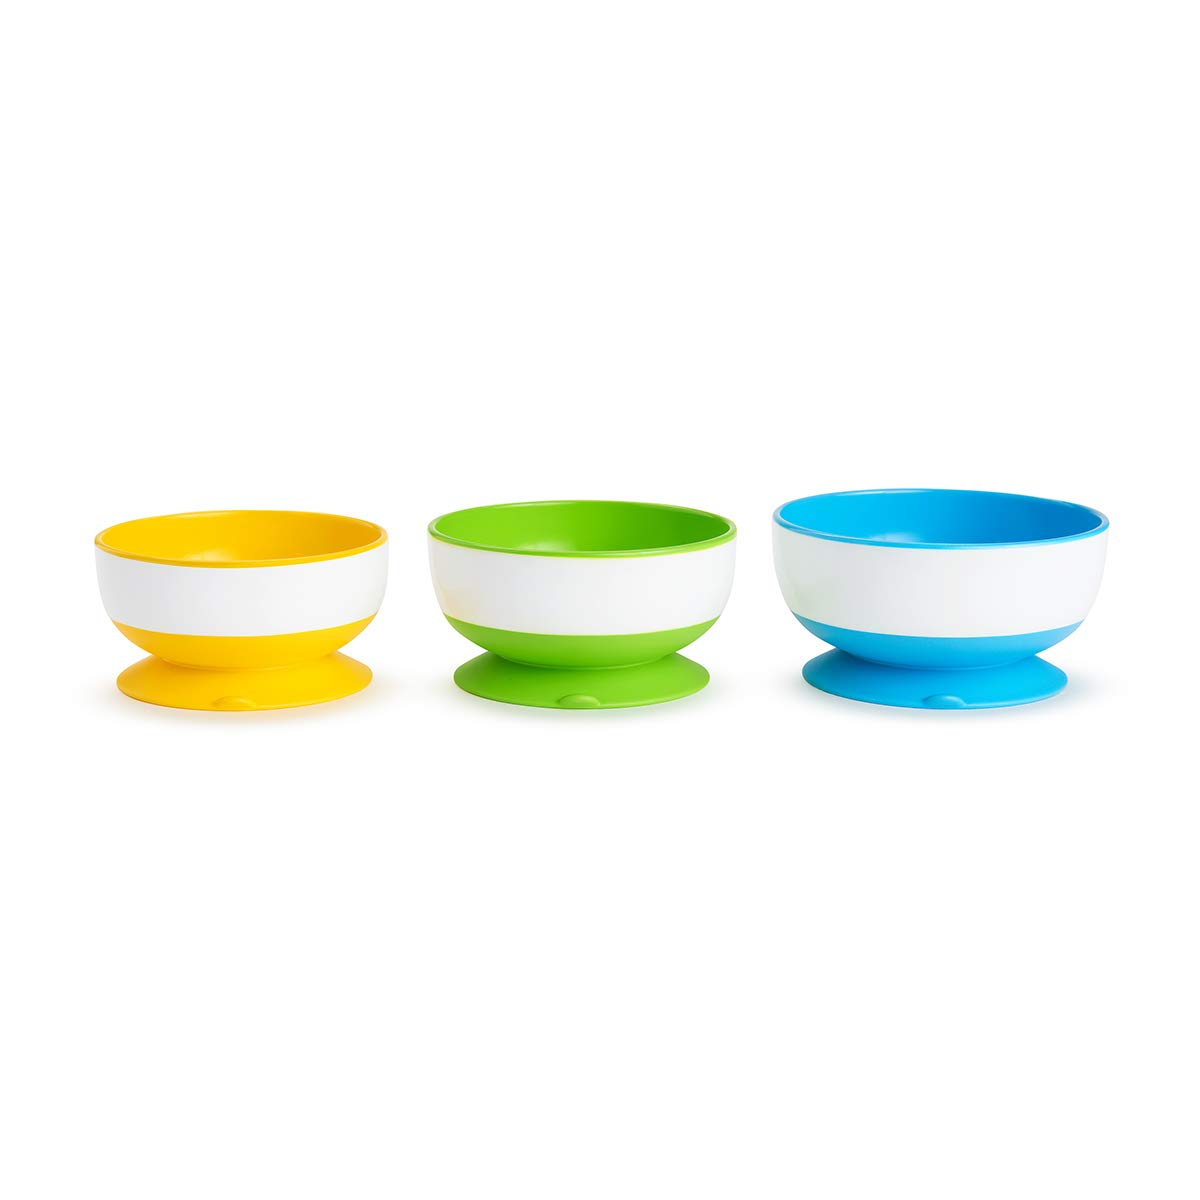 5 Pack Multi Plates By Munchkin Moderate Cost Bowls & Plates Cups, Dishes & Utensils